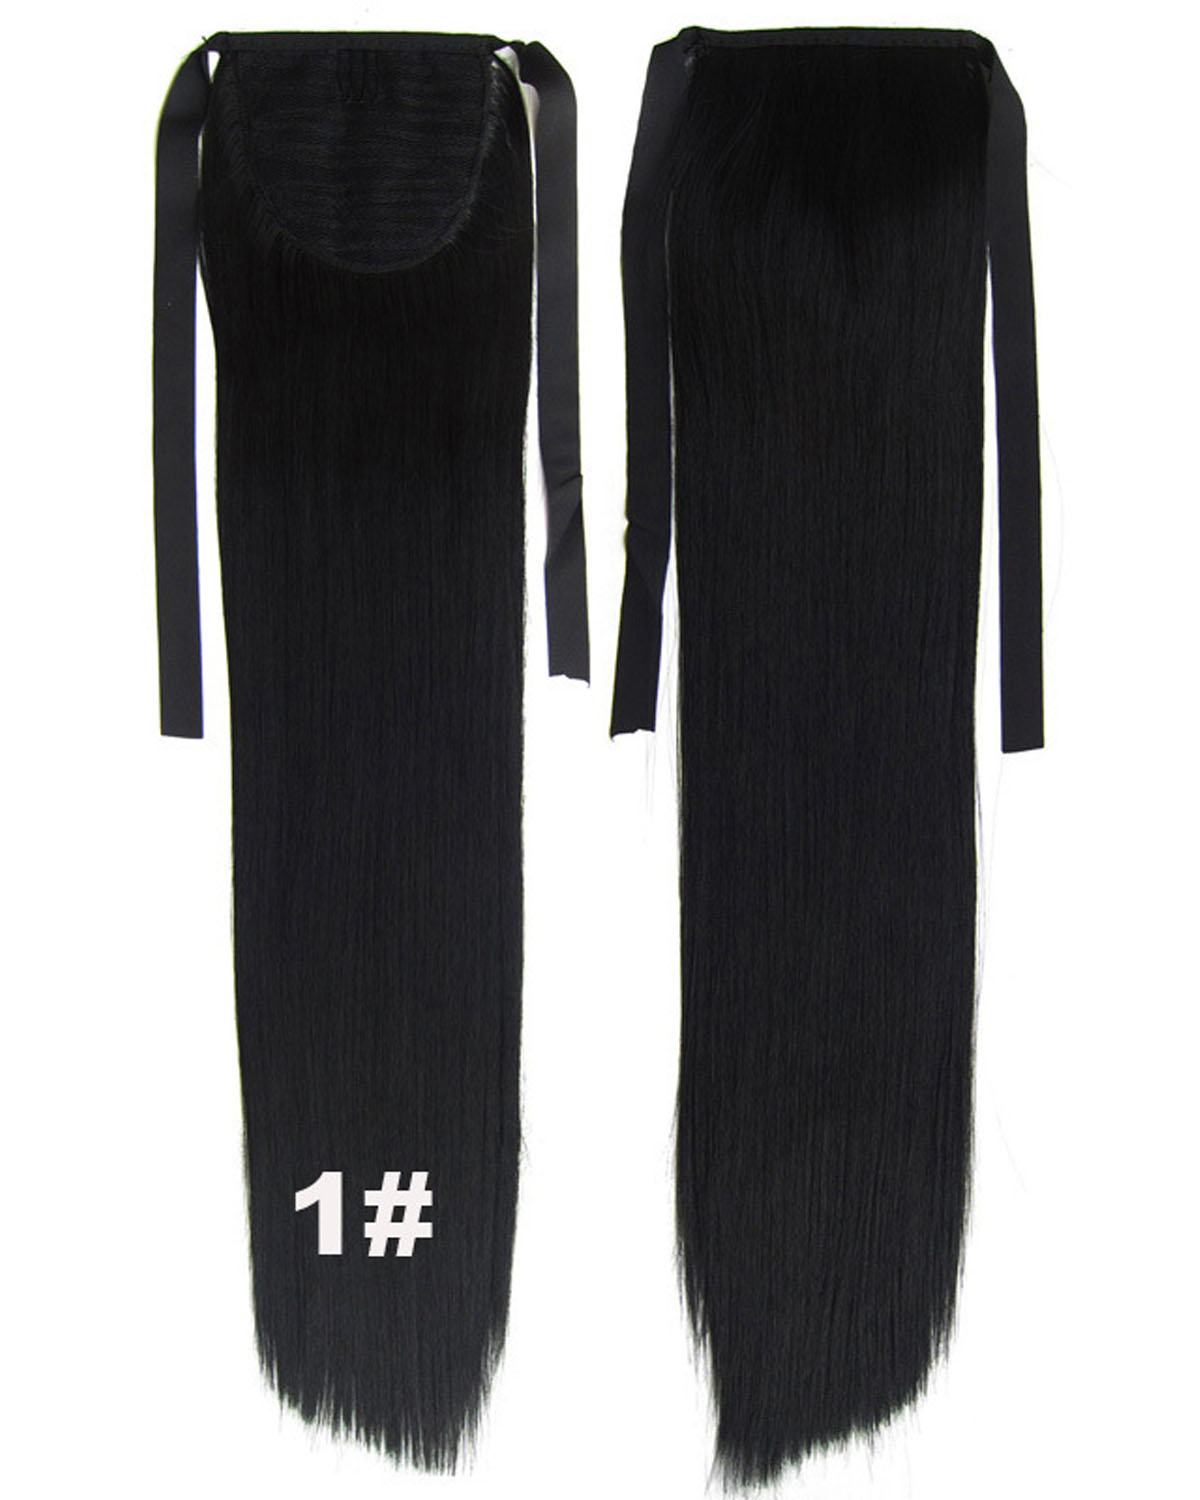 22 Inch Lady High-level Straight and Long Lace/Ribbon Synthetic Hair Ponytail 1#